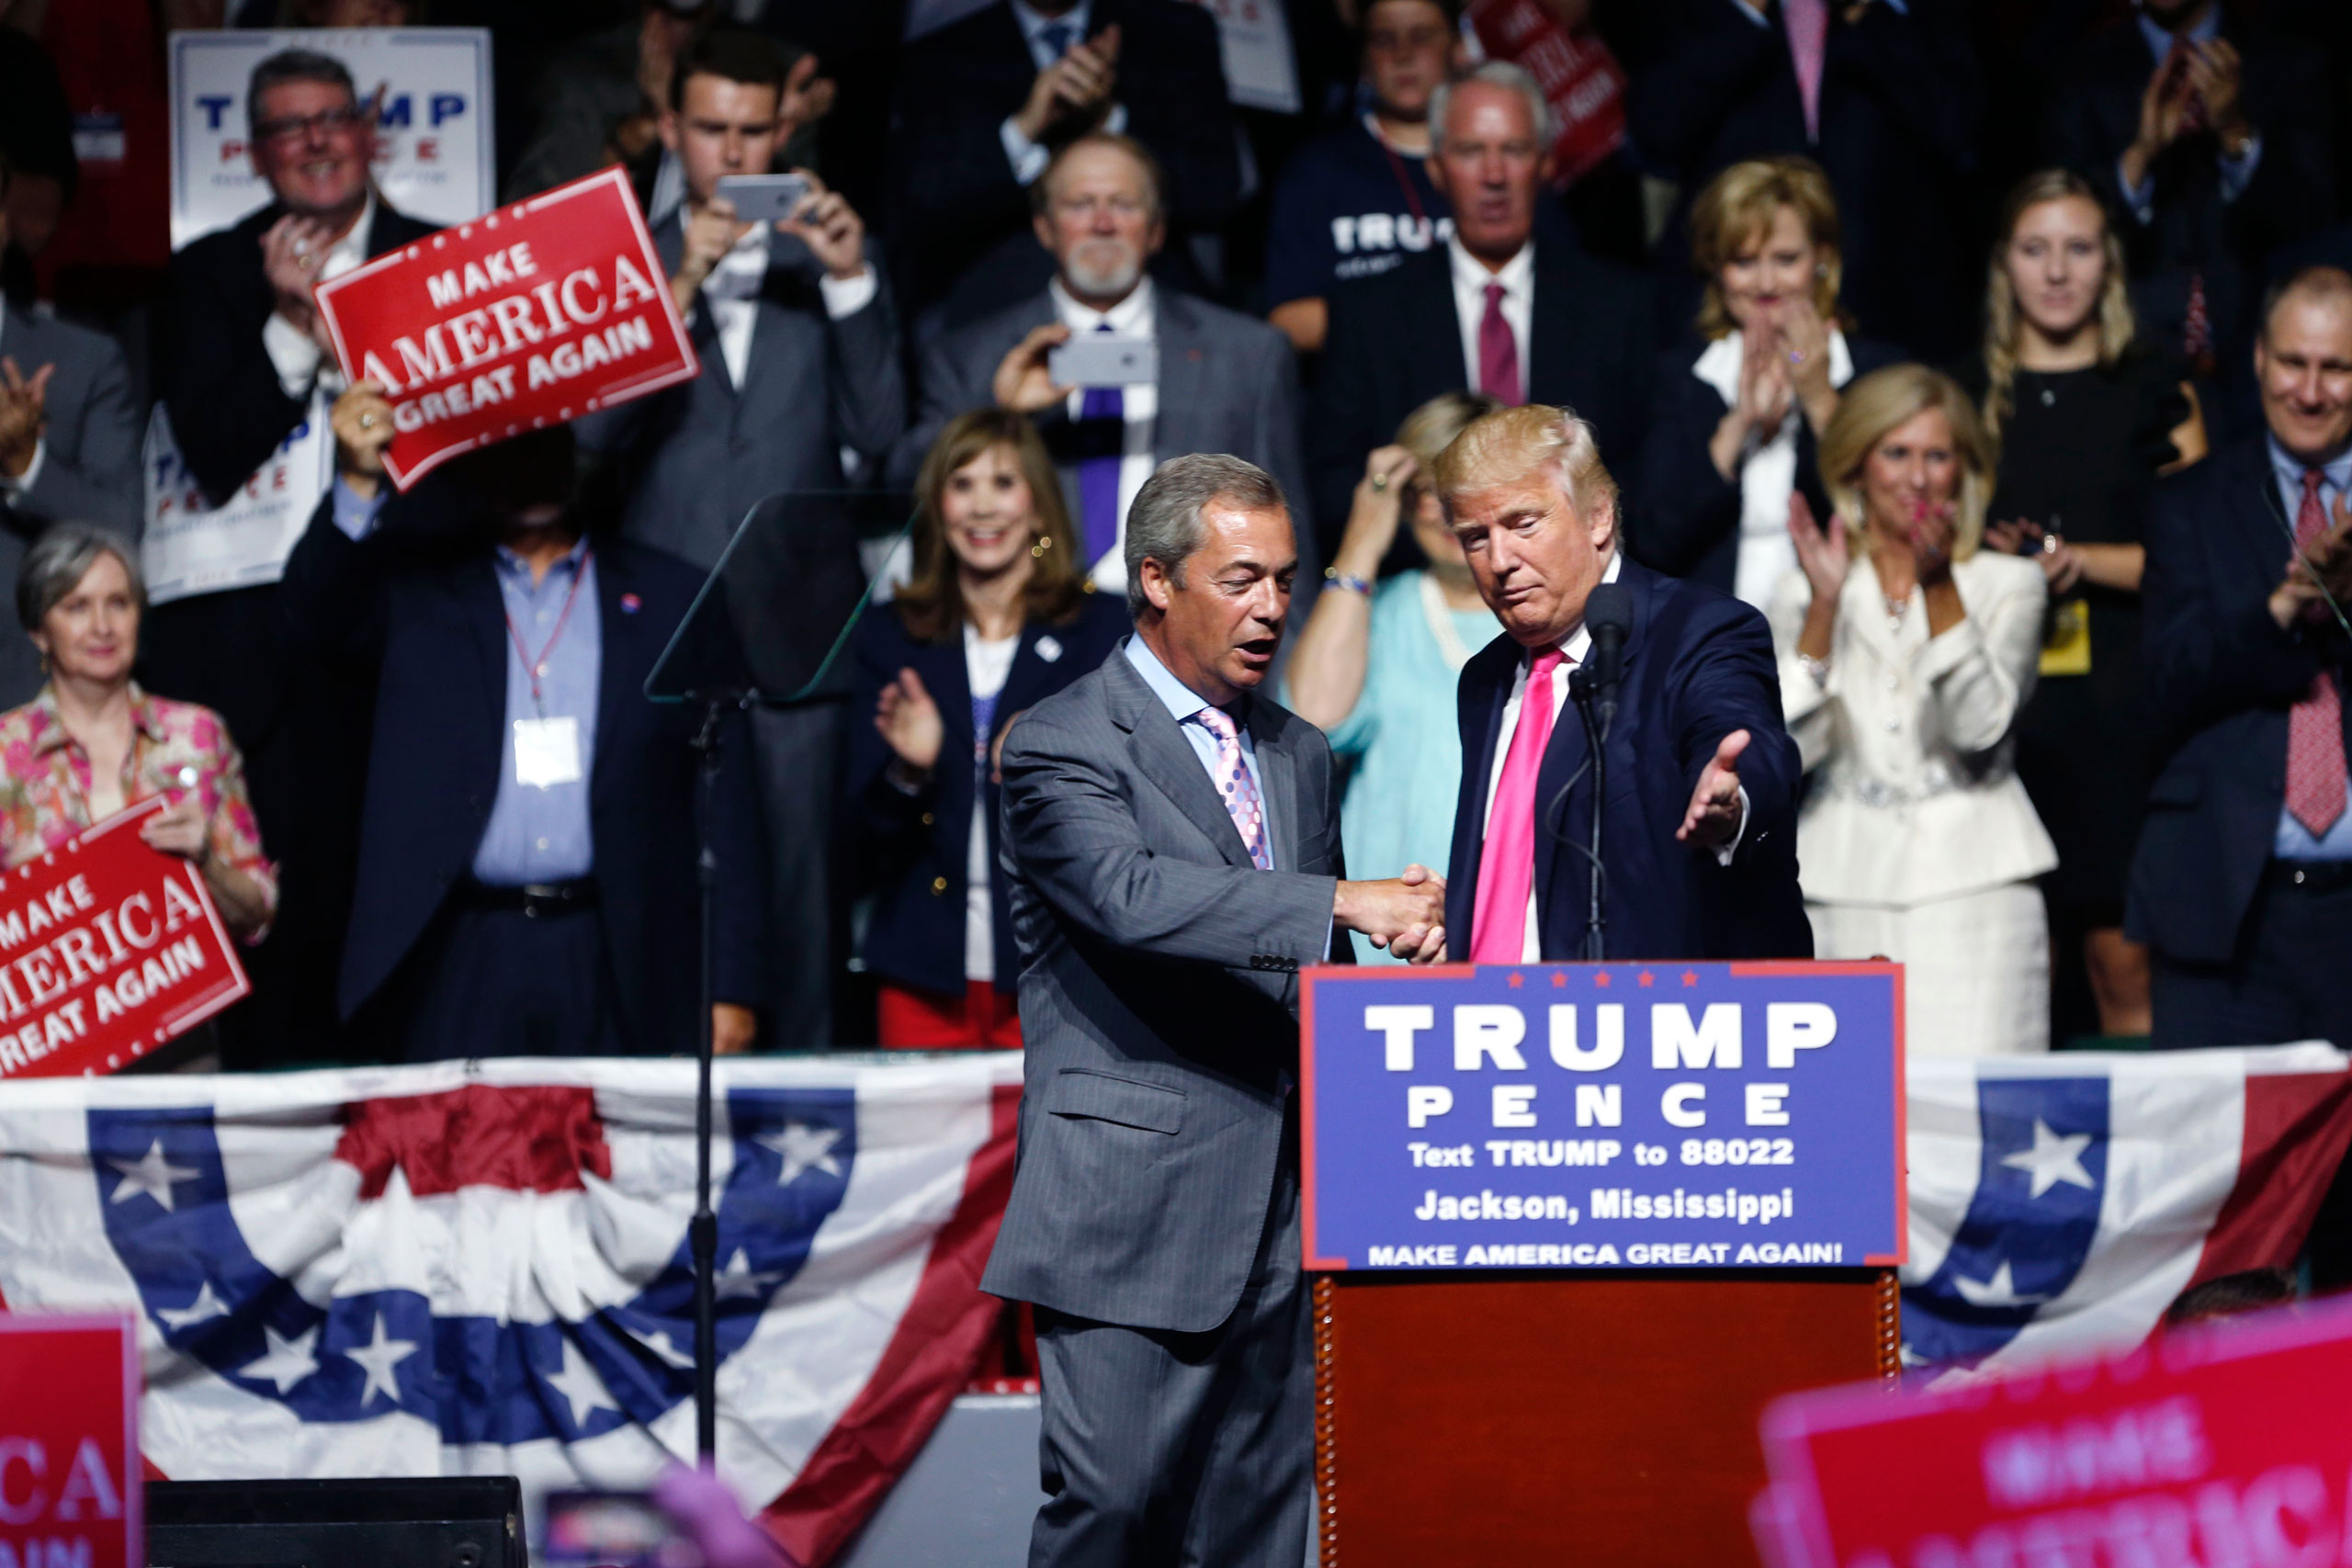 Republican presidential candidate Donald Trump welcomes Nigel Farage, ex-leader of the British UKIP party, to speak at a campaign rally in Jackson, Miss., on Aug. 24, 2016.